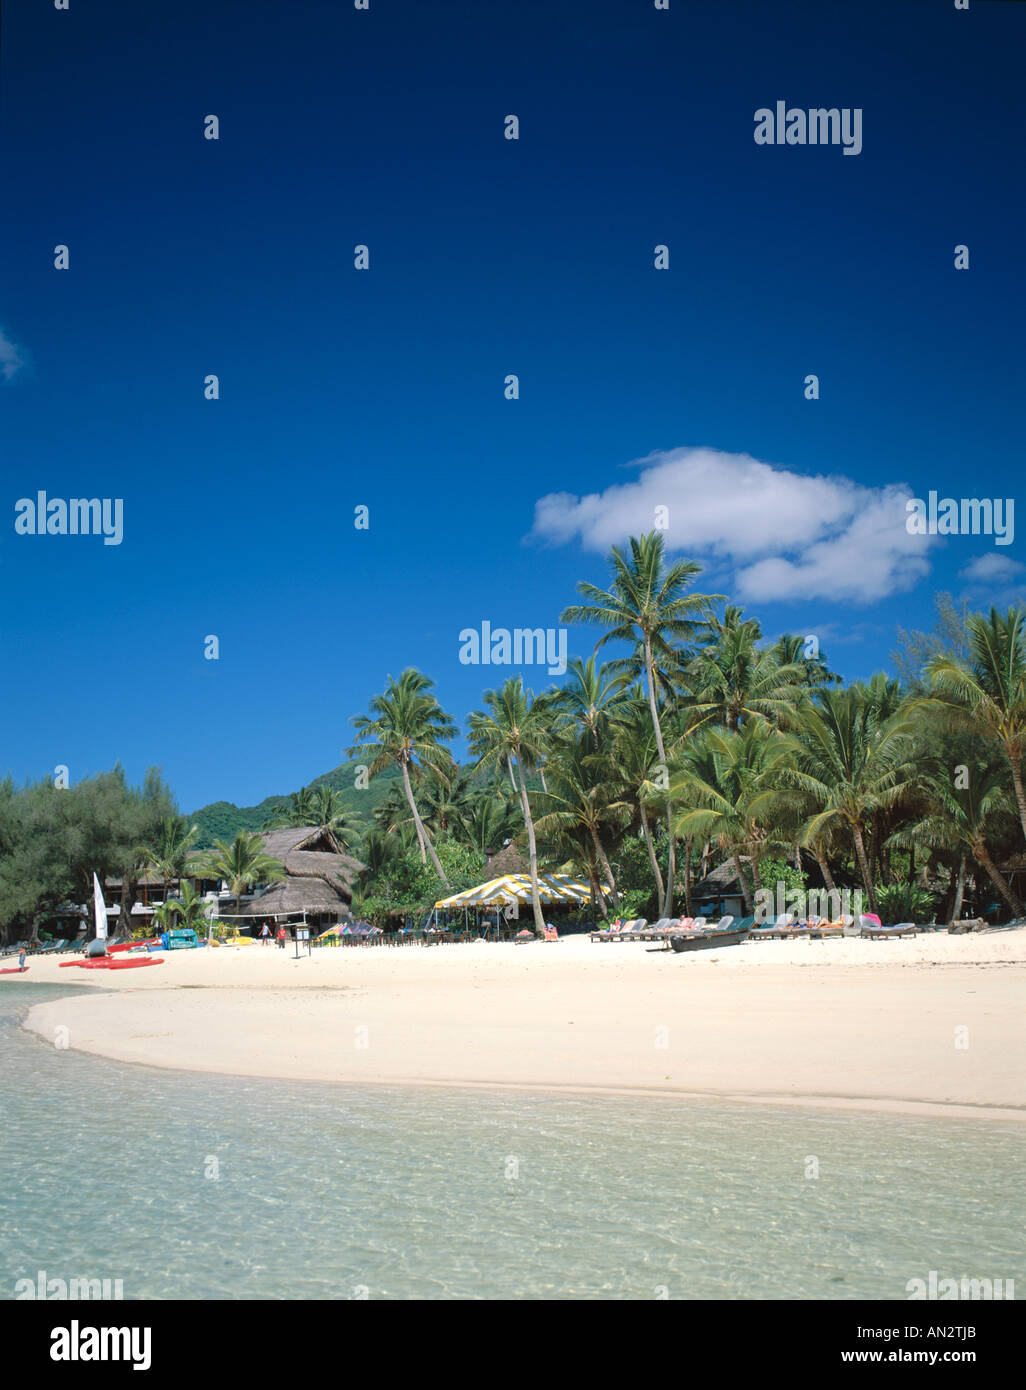 Muri Beach, Rarotonga, Polynesia / South Pacific, Cook Islands - Stock Image